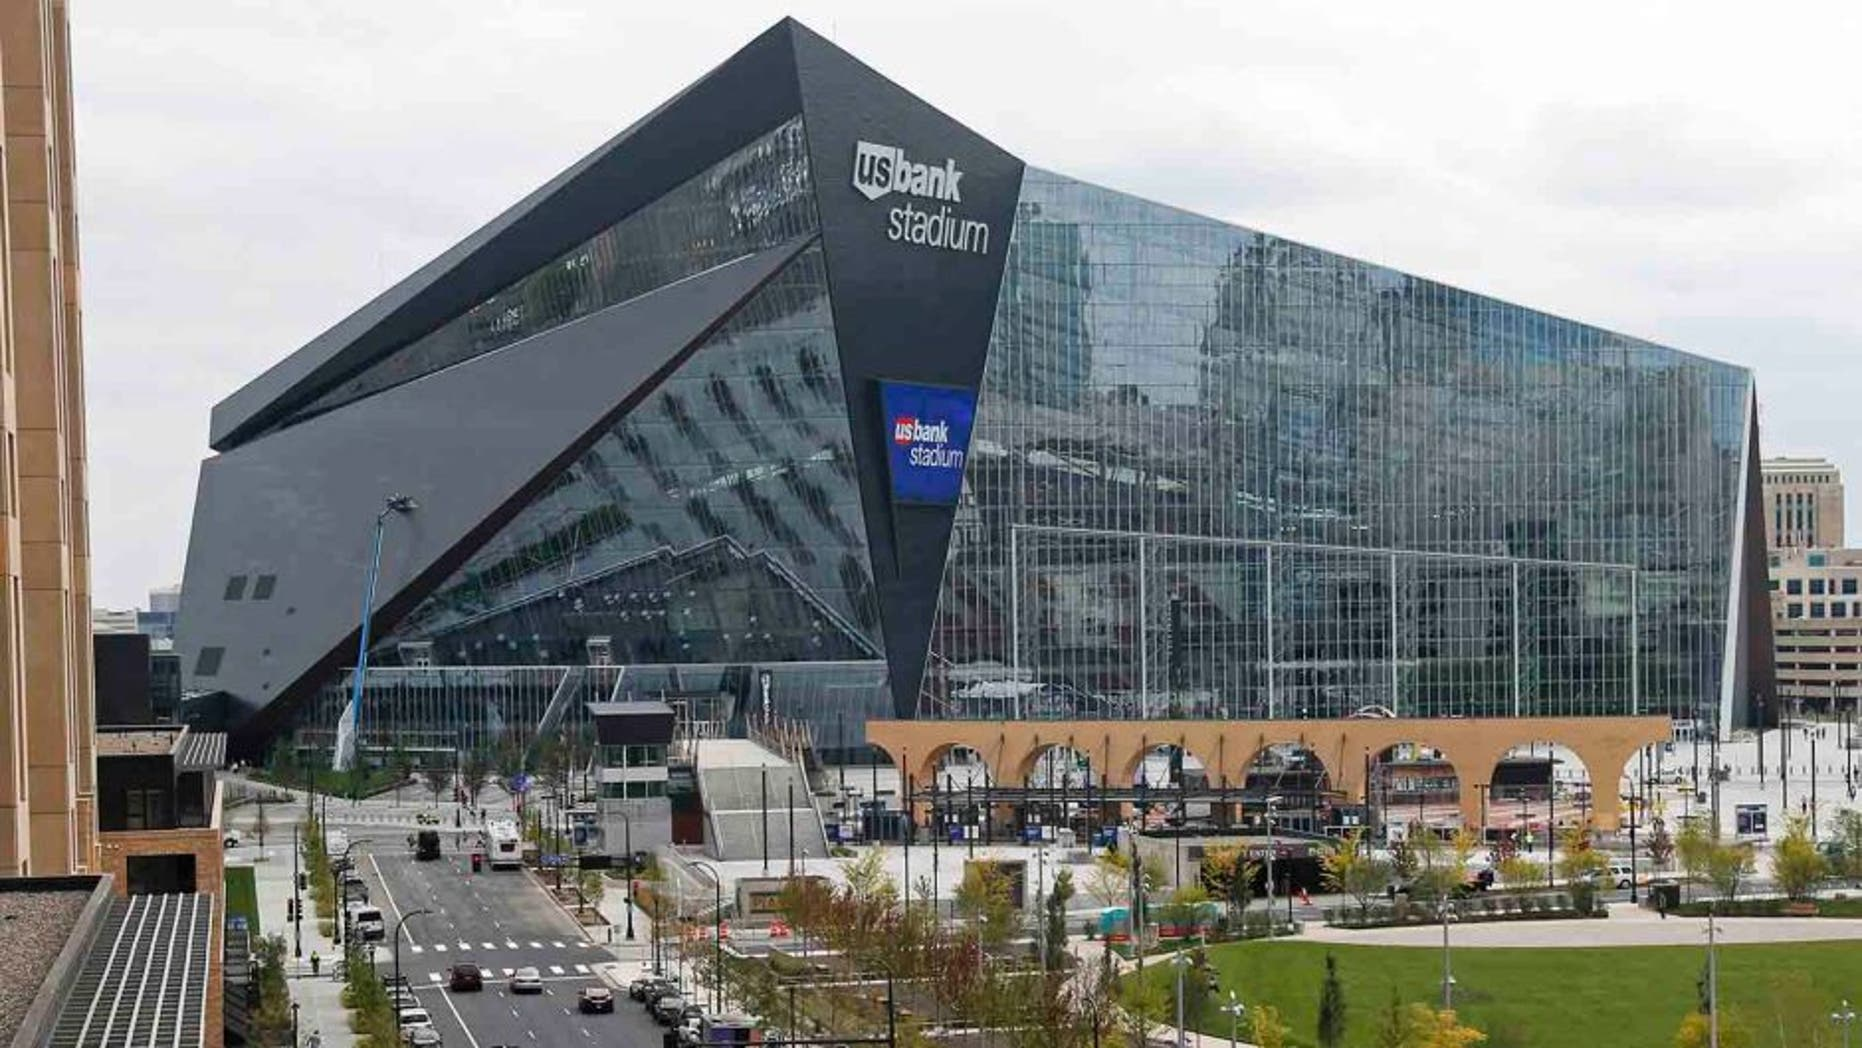 In this photo taken Thursday, Sept. 15, 2016, US Bank Stadium, the new home of the NFL Minnesota Vikings football team, is shown in Minneapolis. The Vikings will host the Green Bay Packers in the first regular season game in the new stadium Sunday, Sept. 18. The Vikings are expecting the $1.1 billion translucent building to be a significant advantage for them with 66,000 roaring fans packing the place all fall. (AP Photo/Jim Mone)